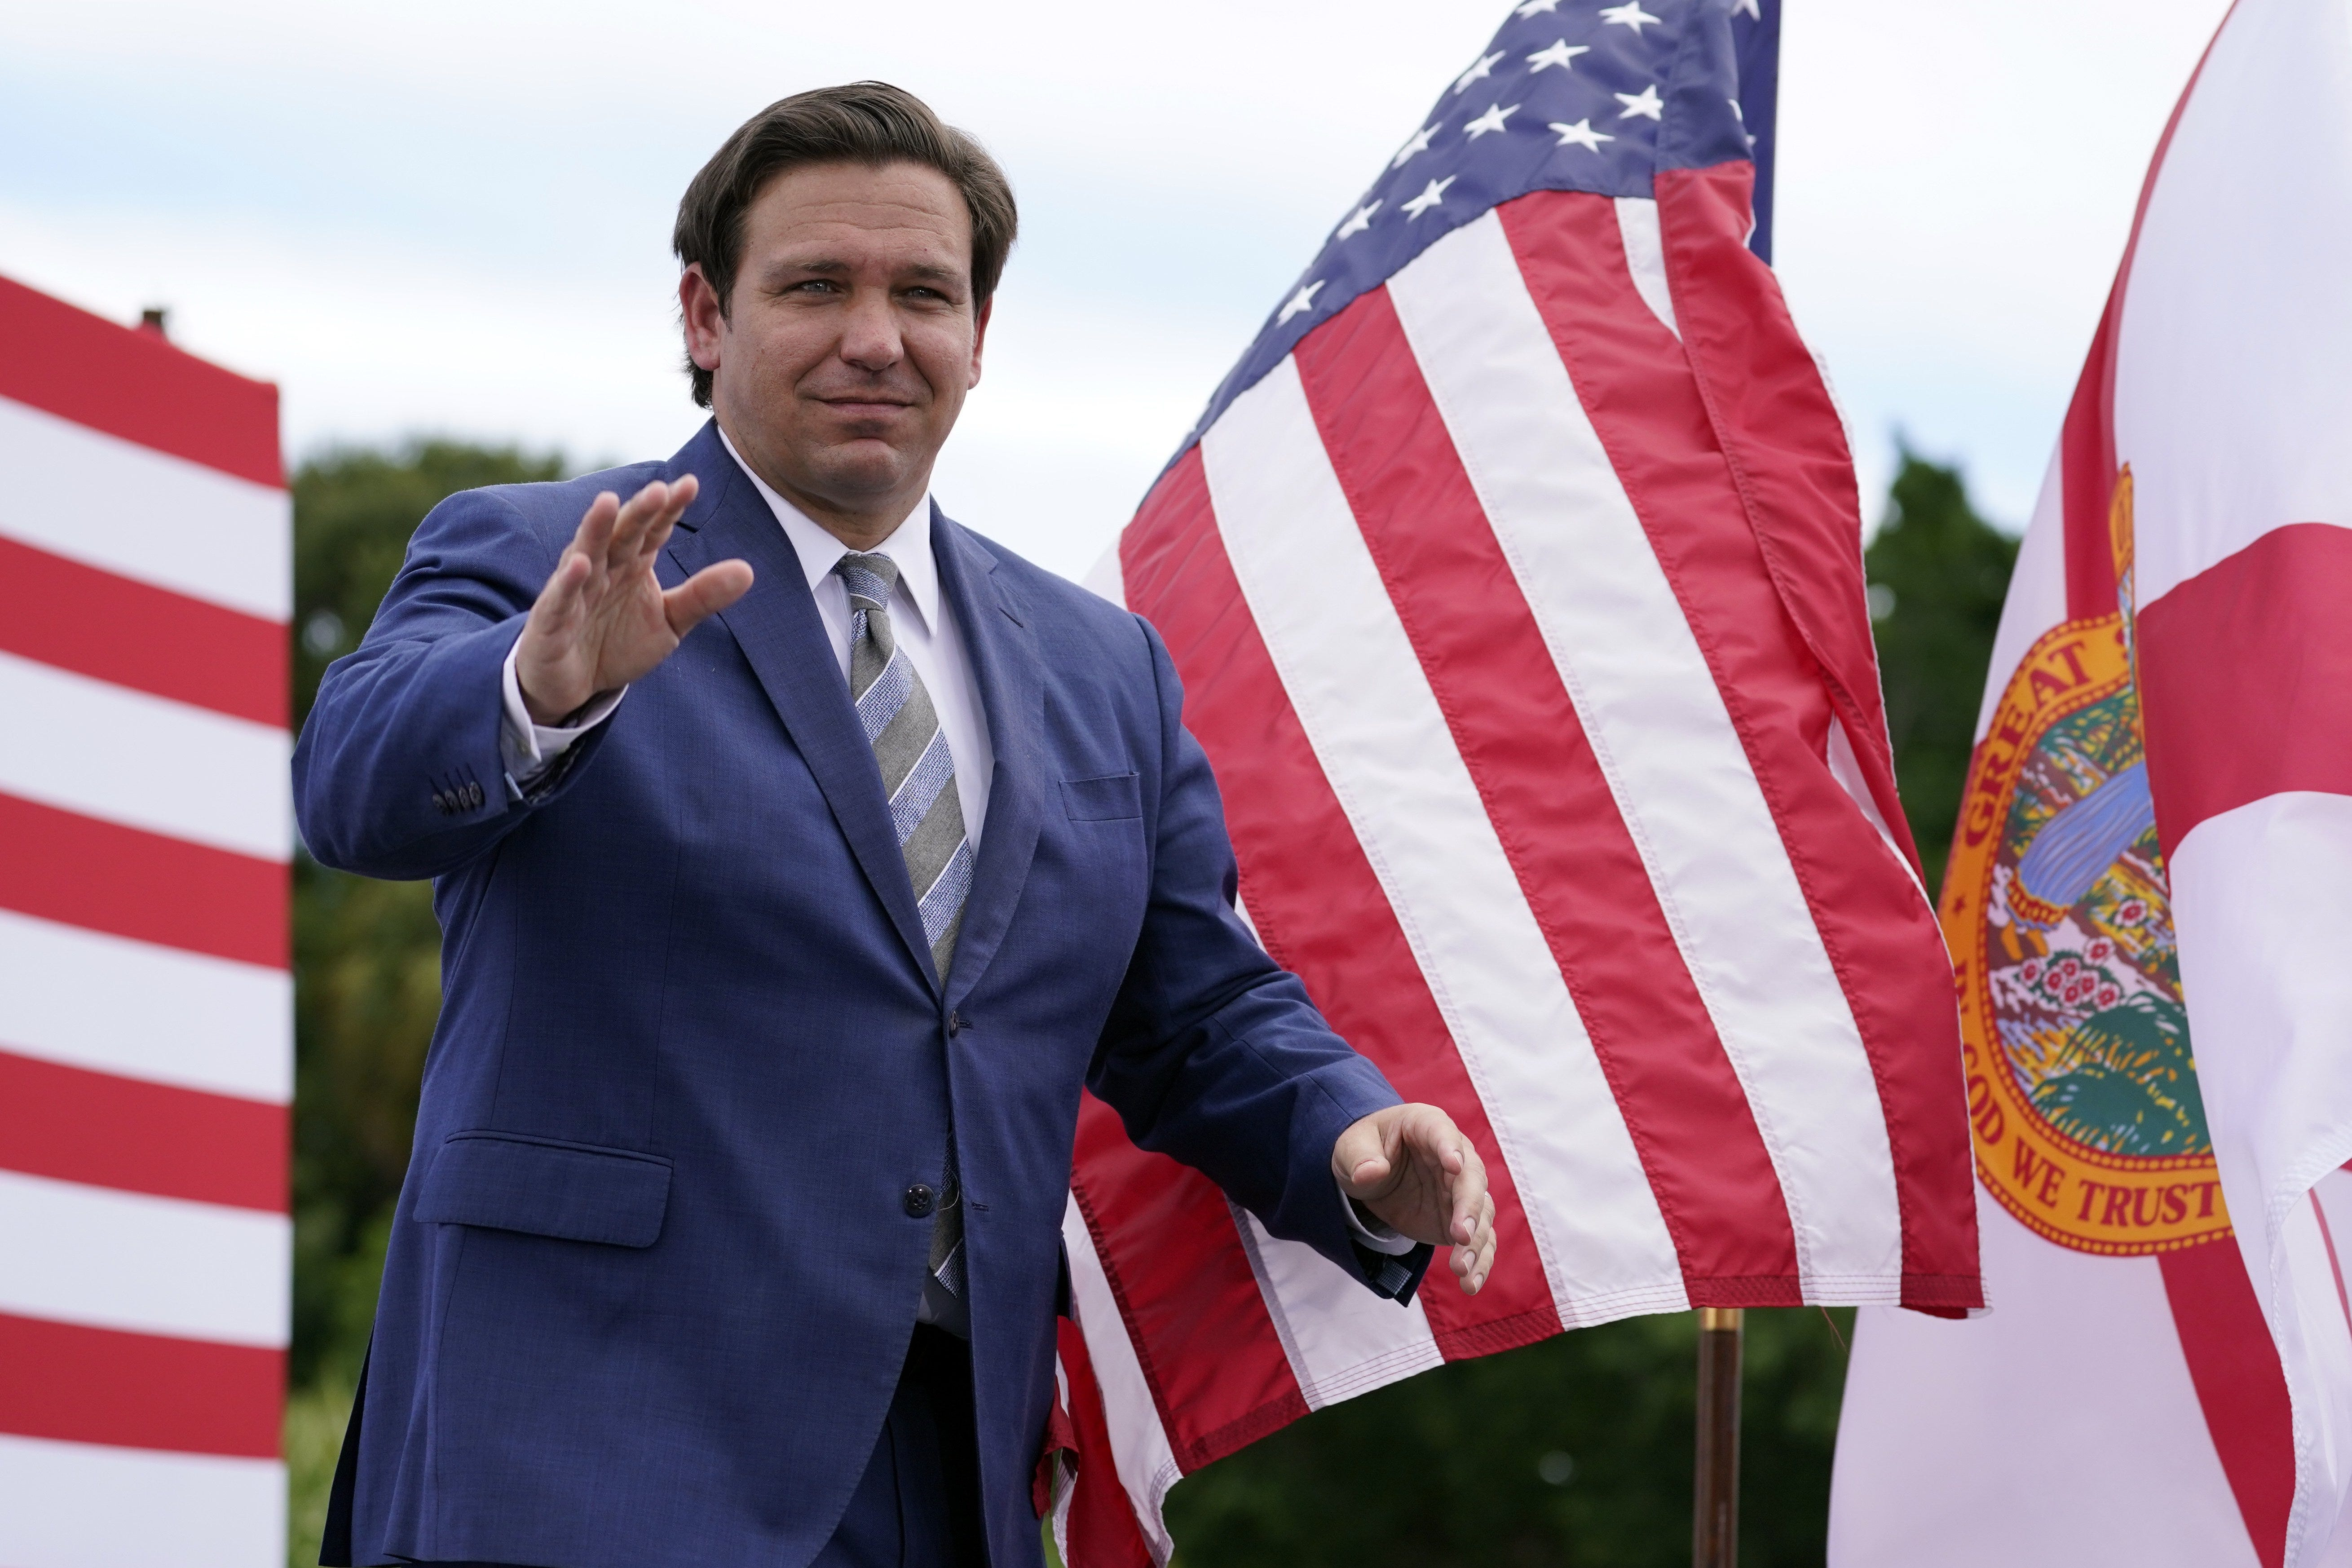 Editorial Ron Desantis Is Treading Dangerously Close To The Authoritarian